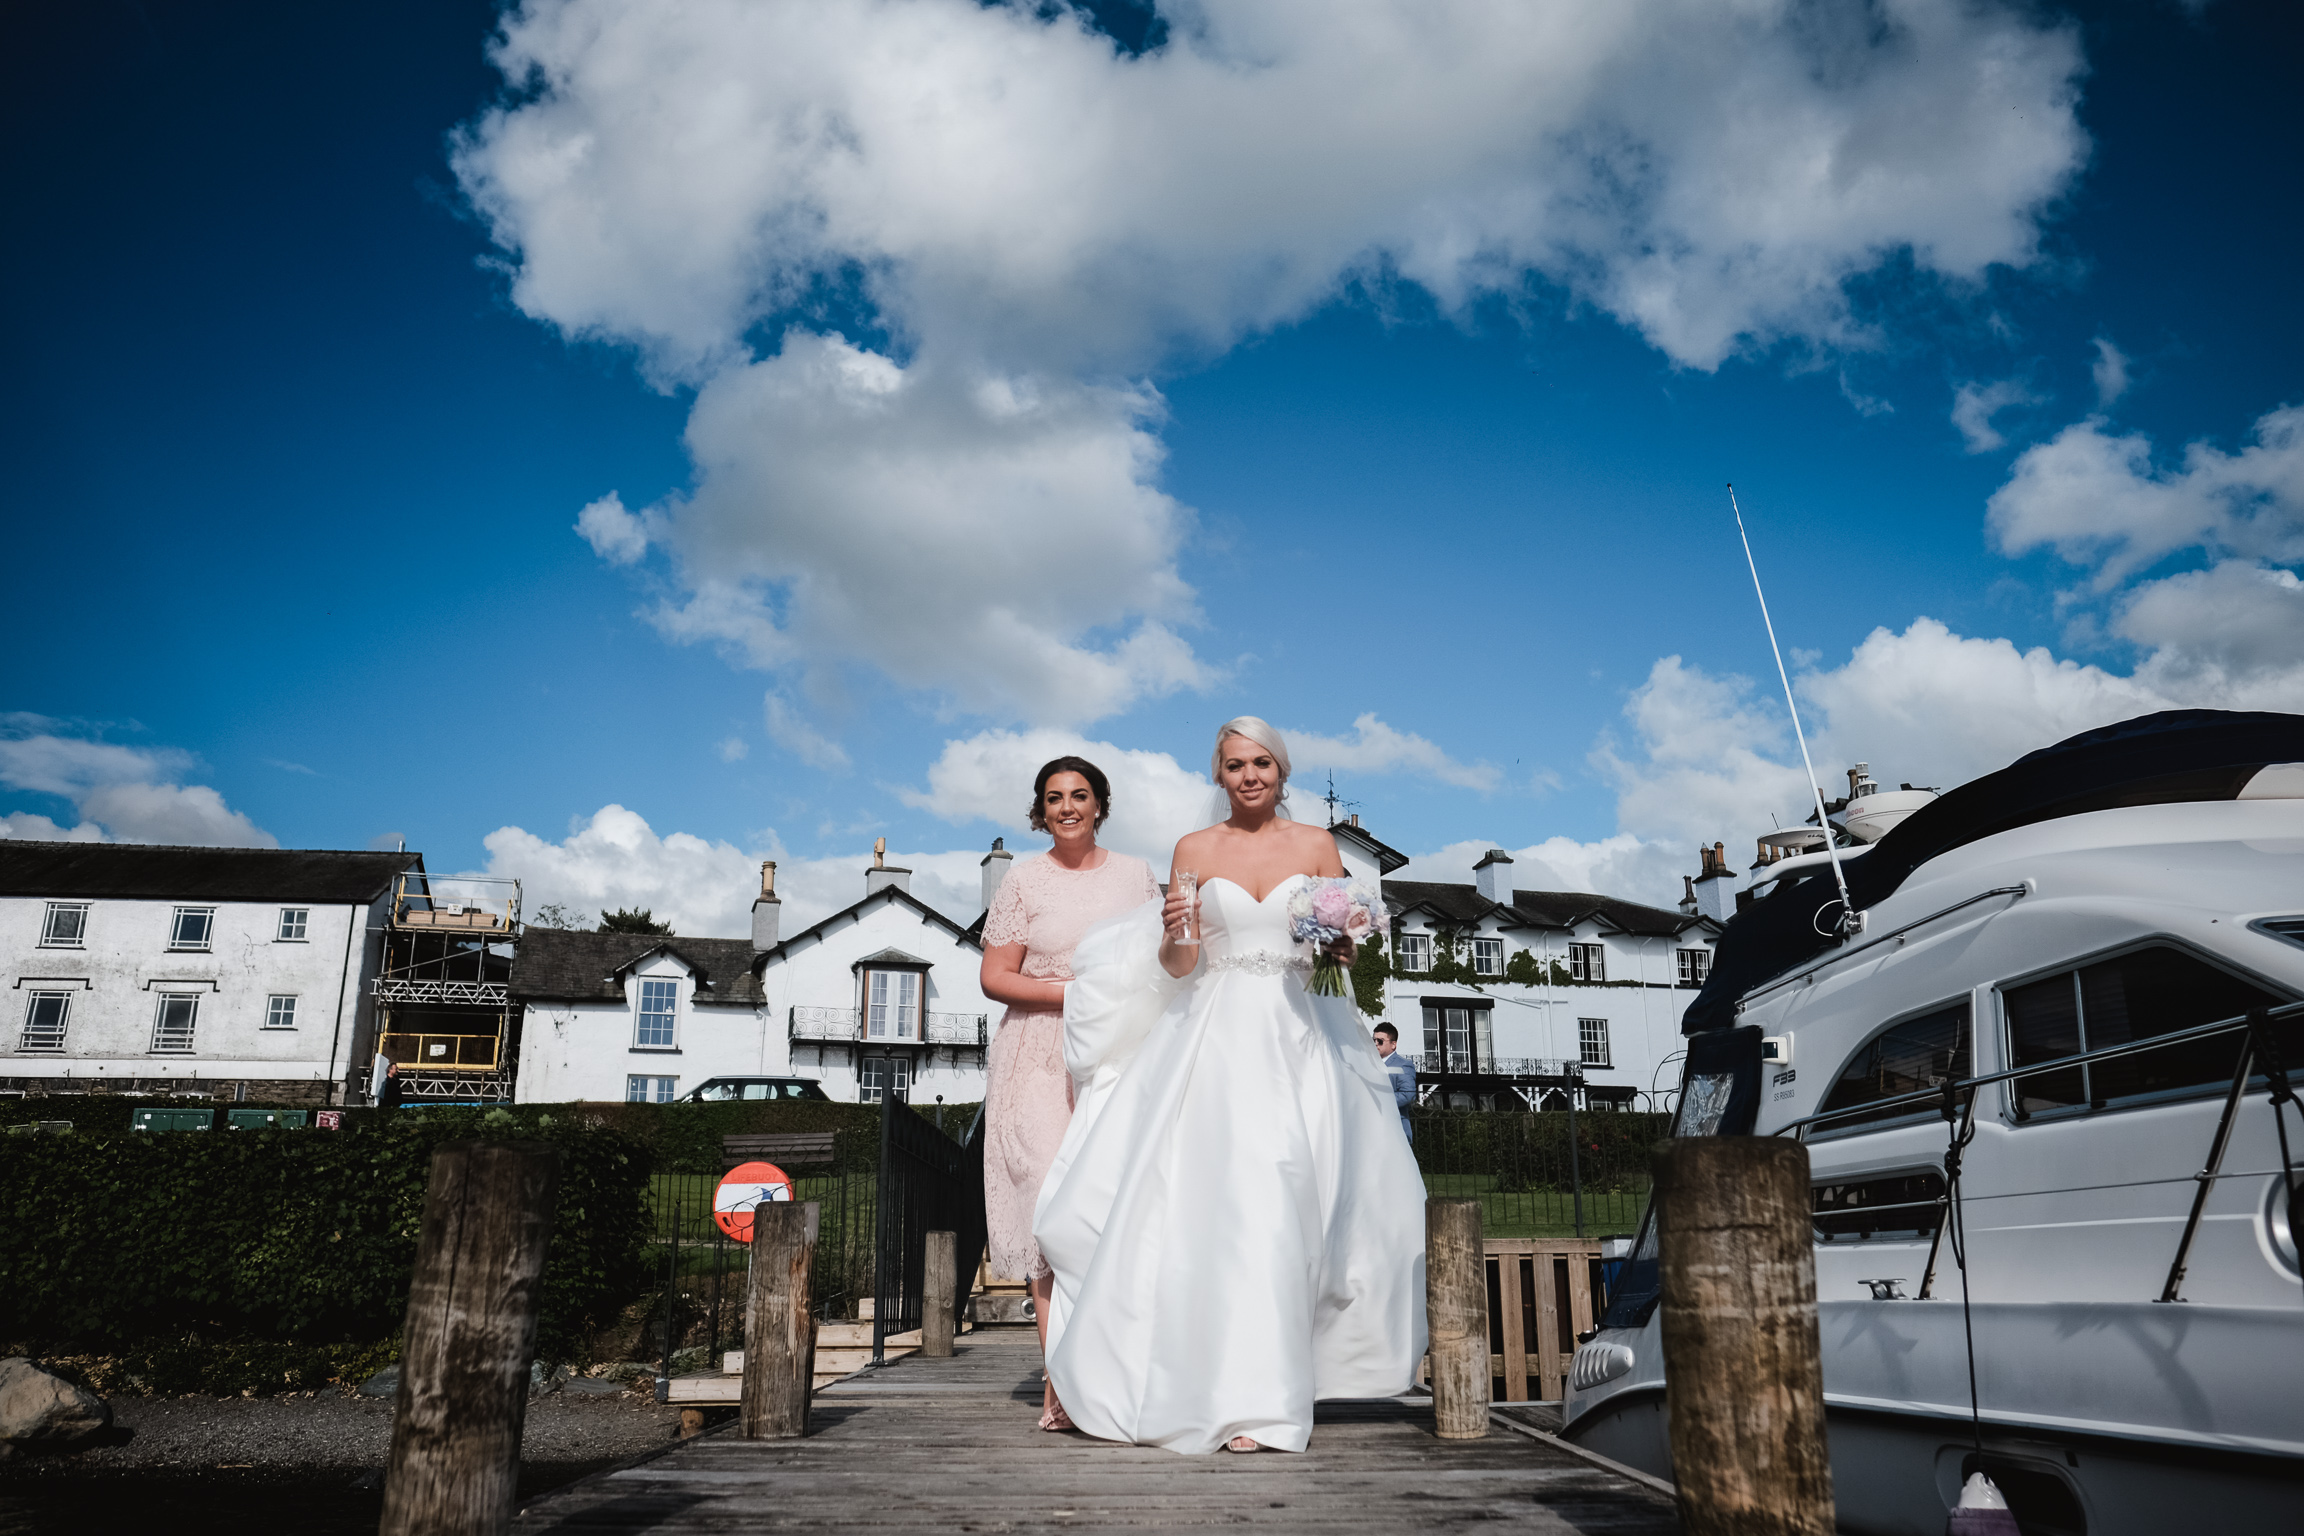 Low wood bay wedding photographer in widermere documentry wedding photography north west cumbria (87 of 131).jpg